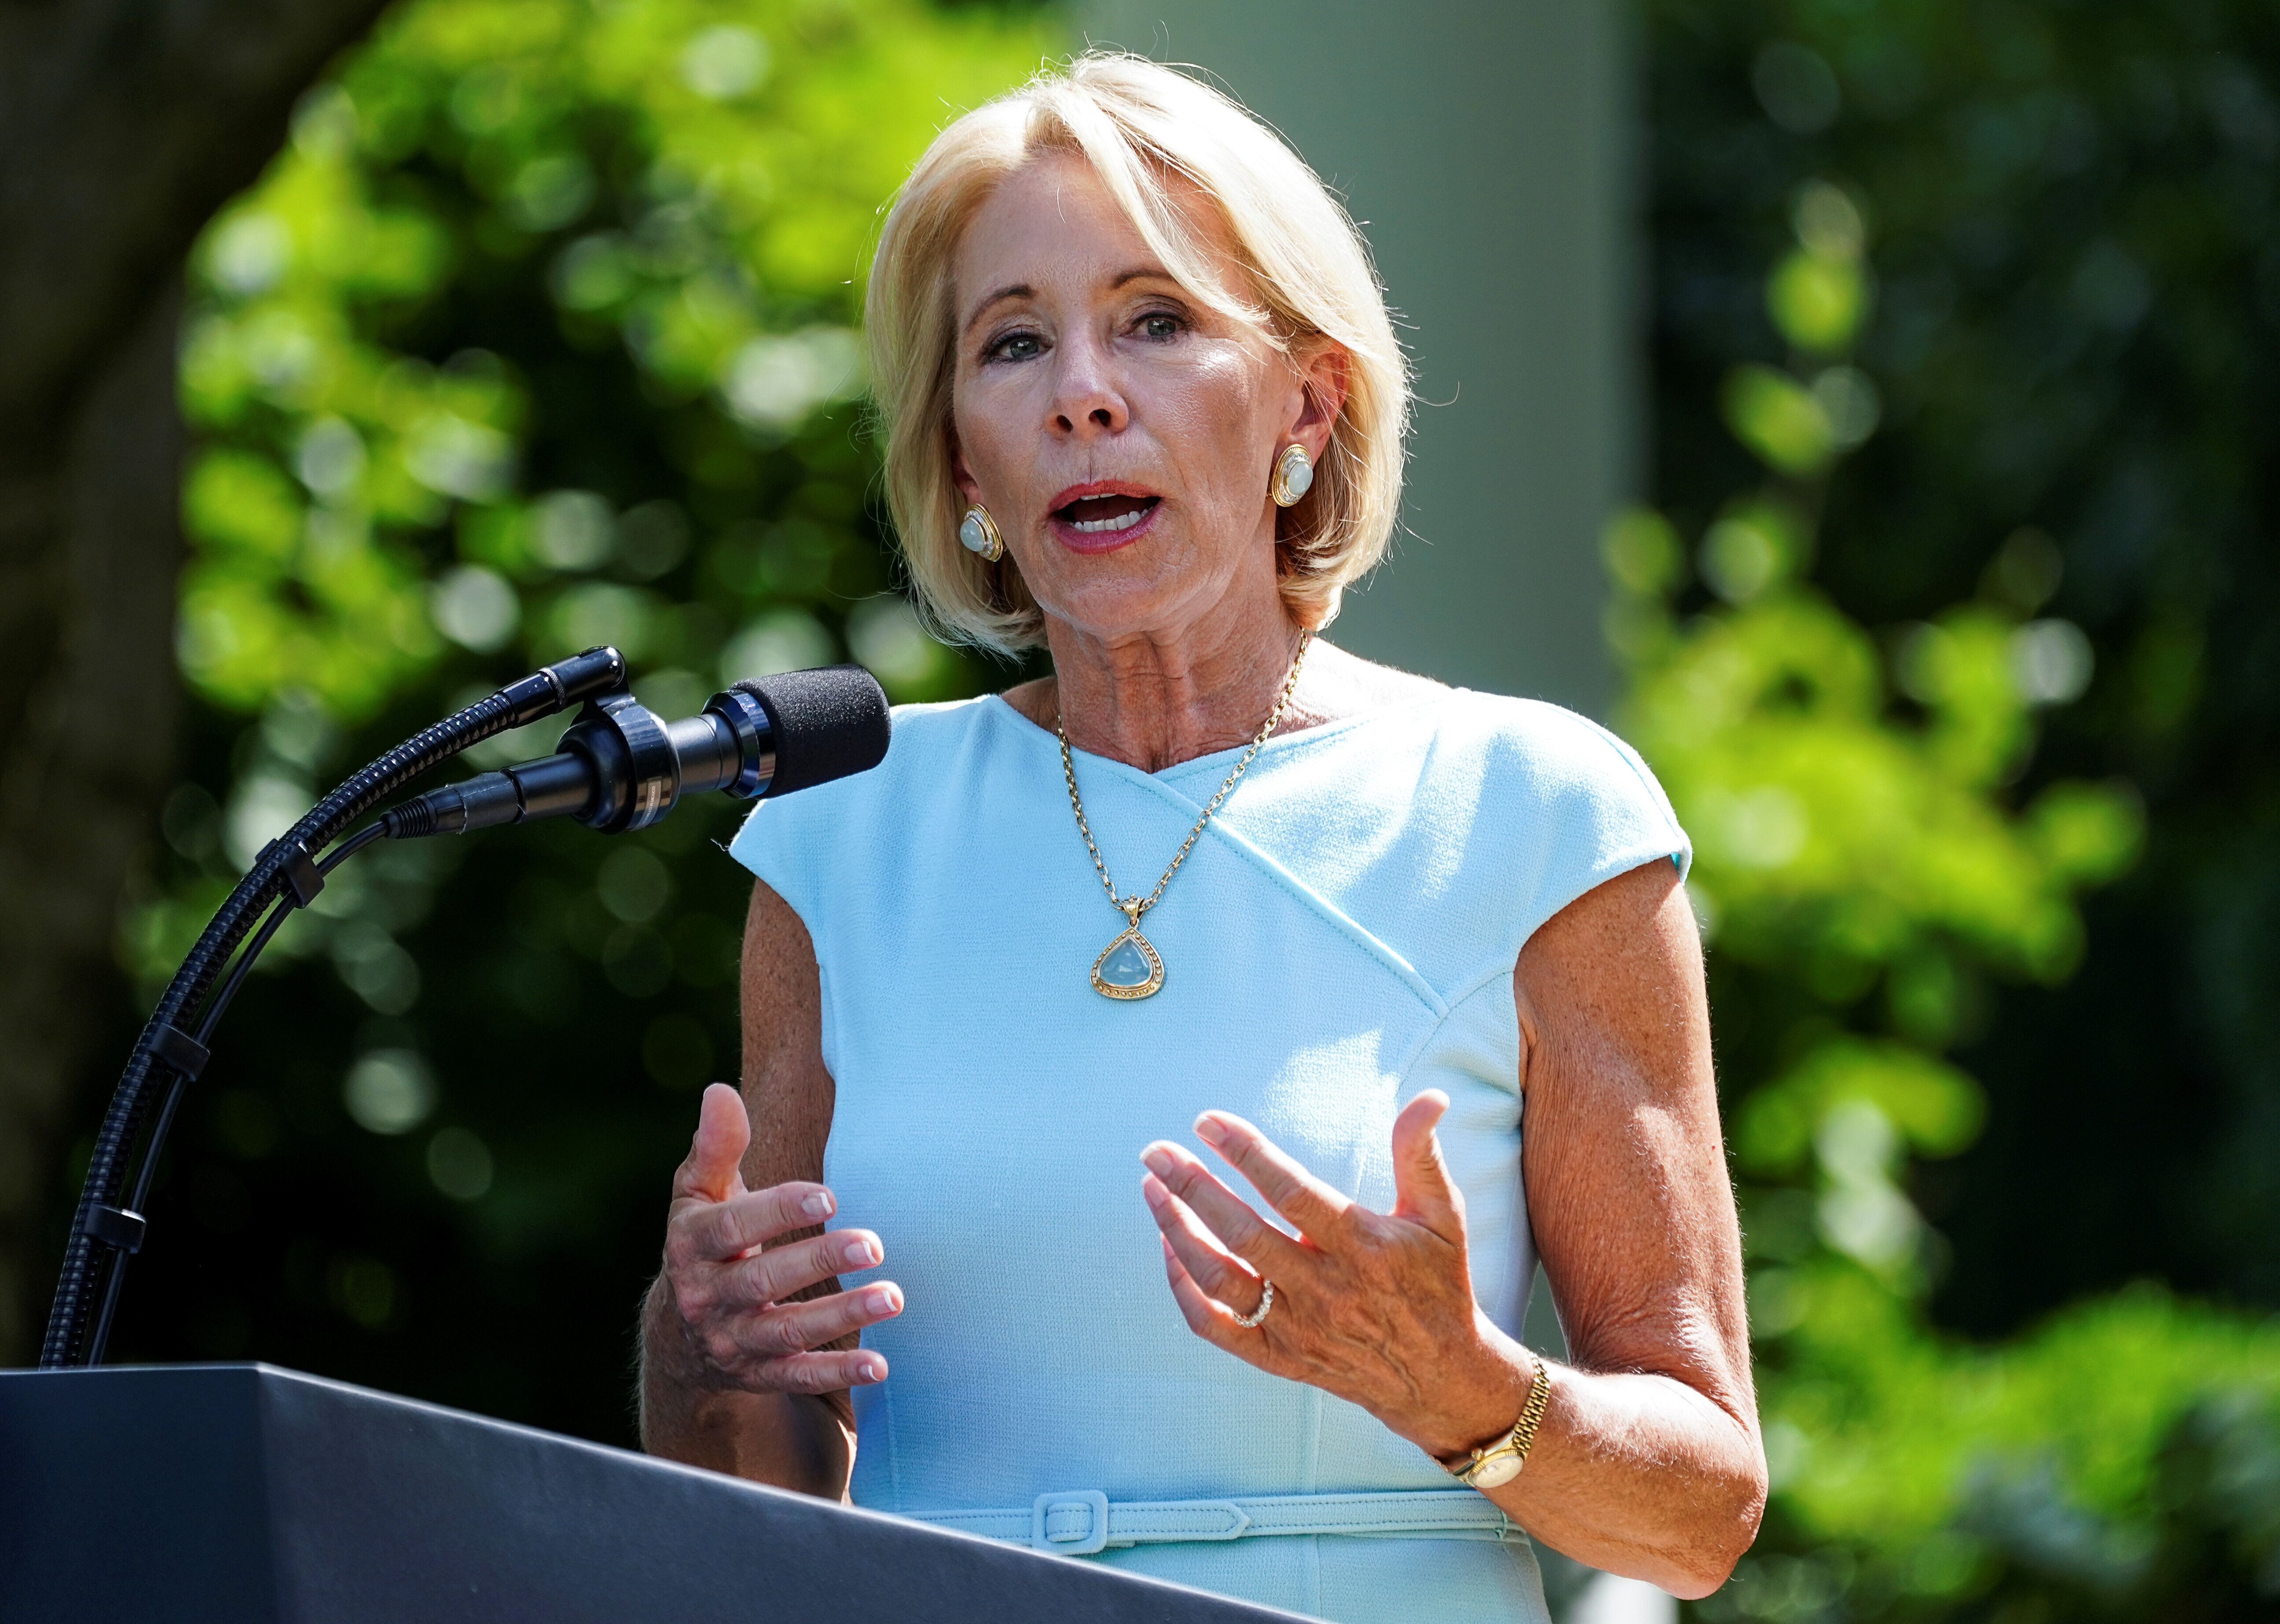 Under Education Secretary Betsy Devos, the Department of Education has threatened to pull funding from schools if transgender